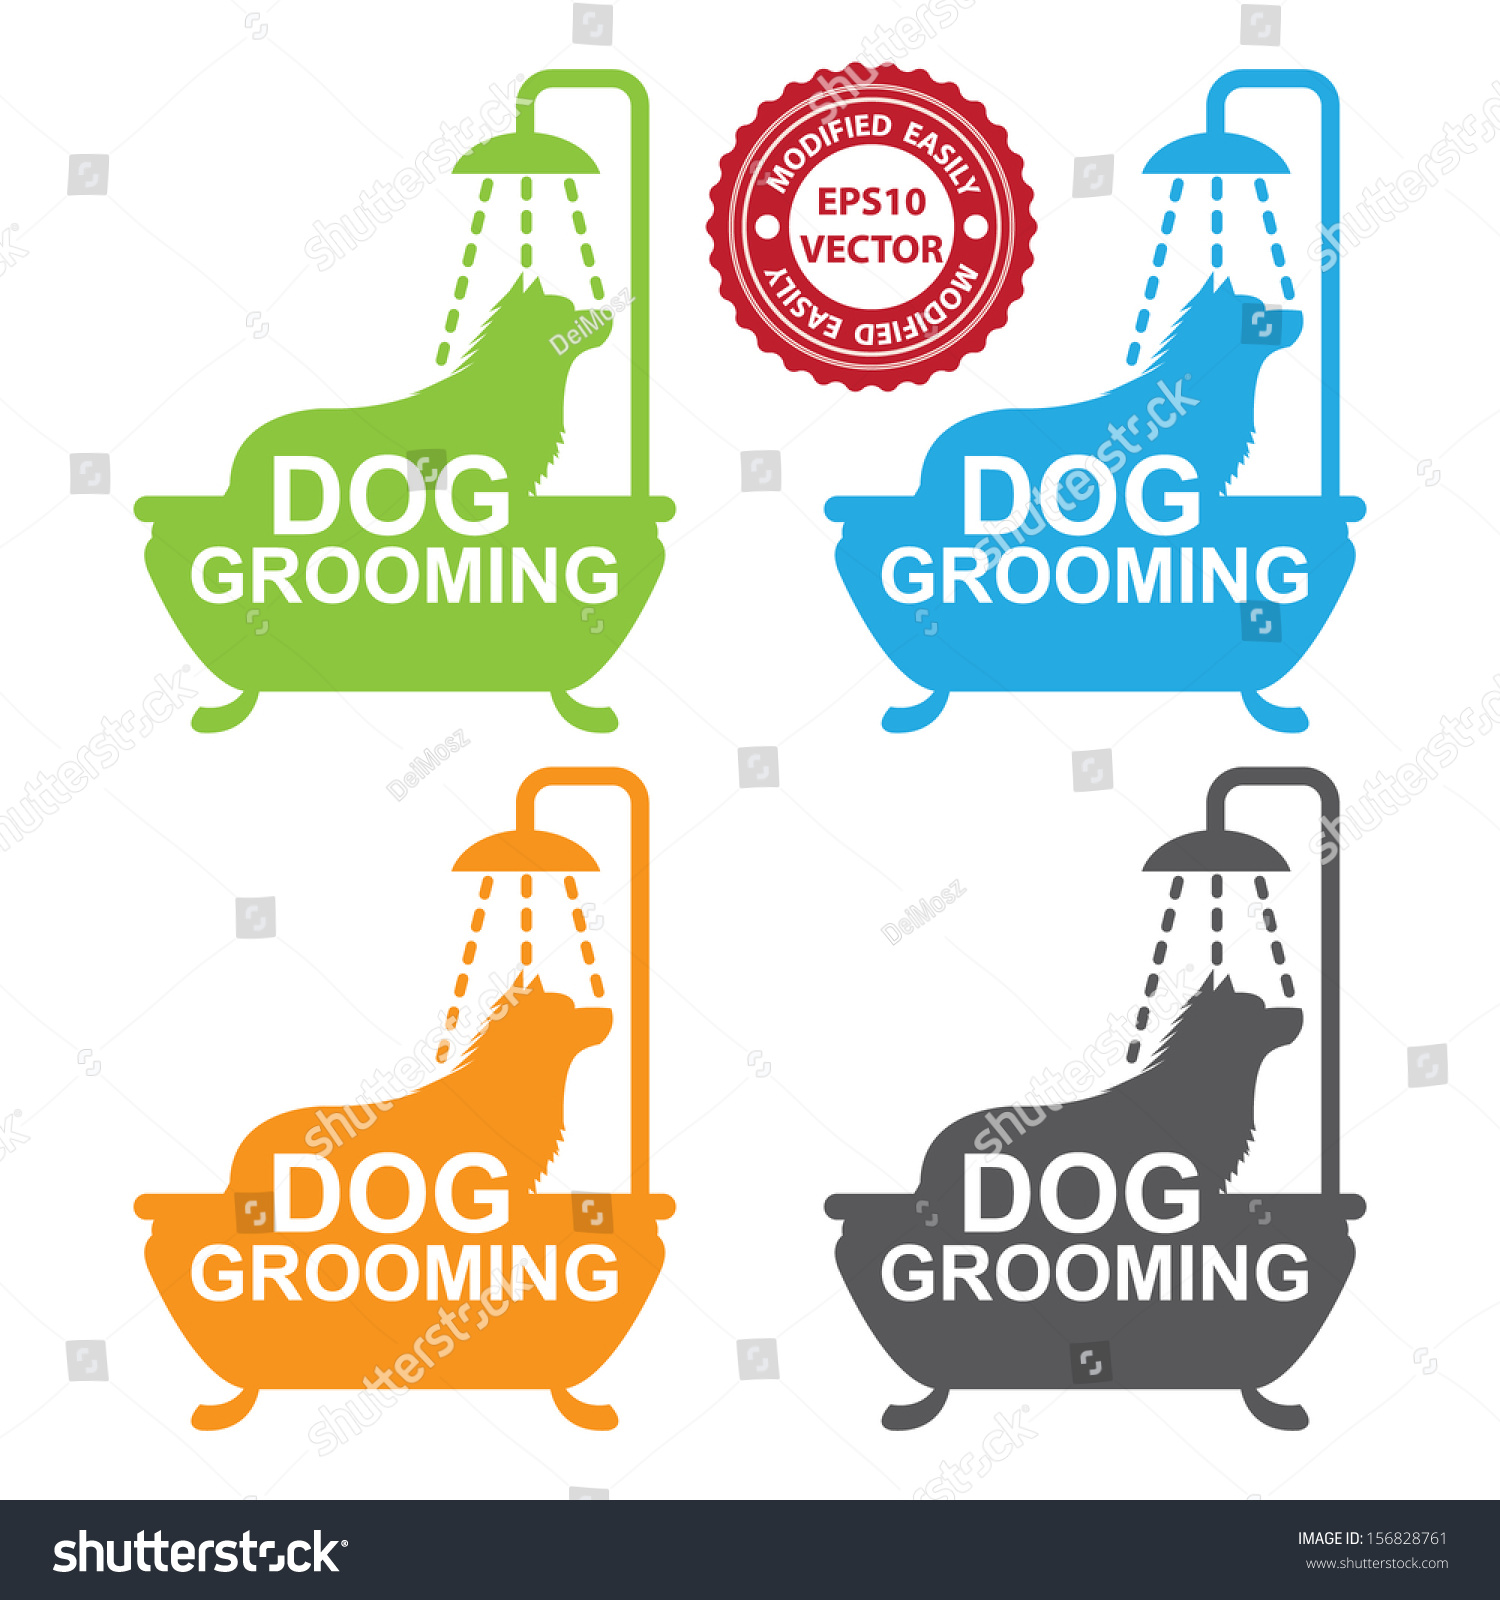 how to start a dog grooming business from scratch